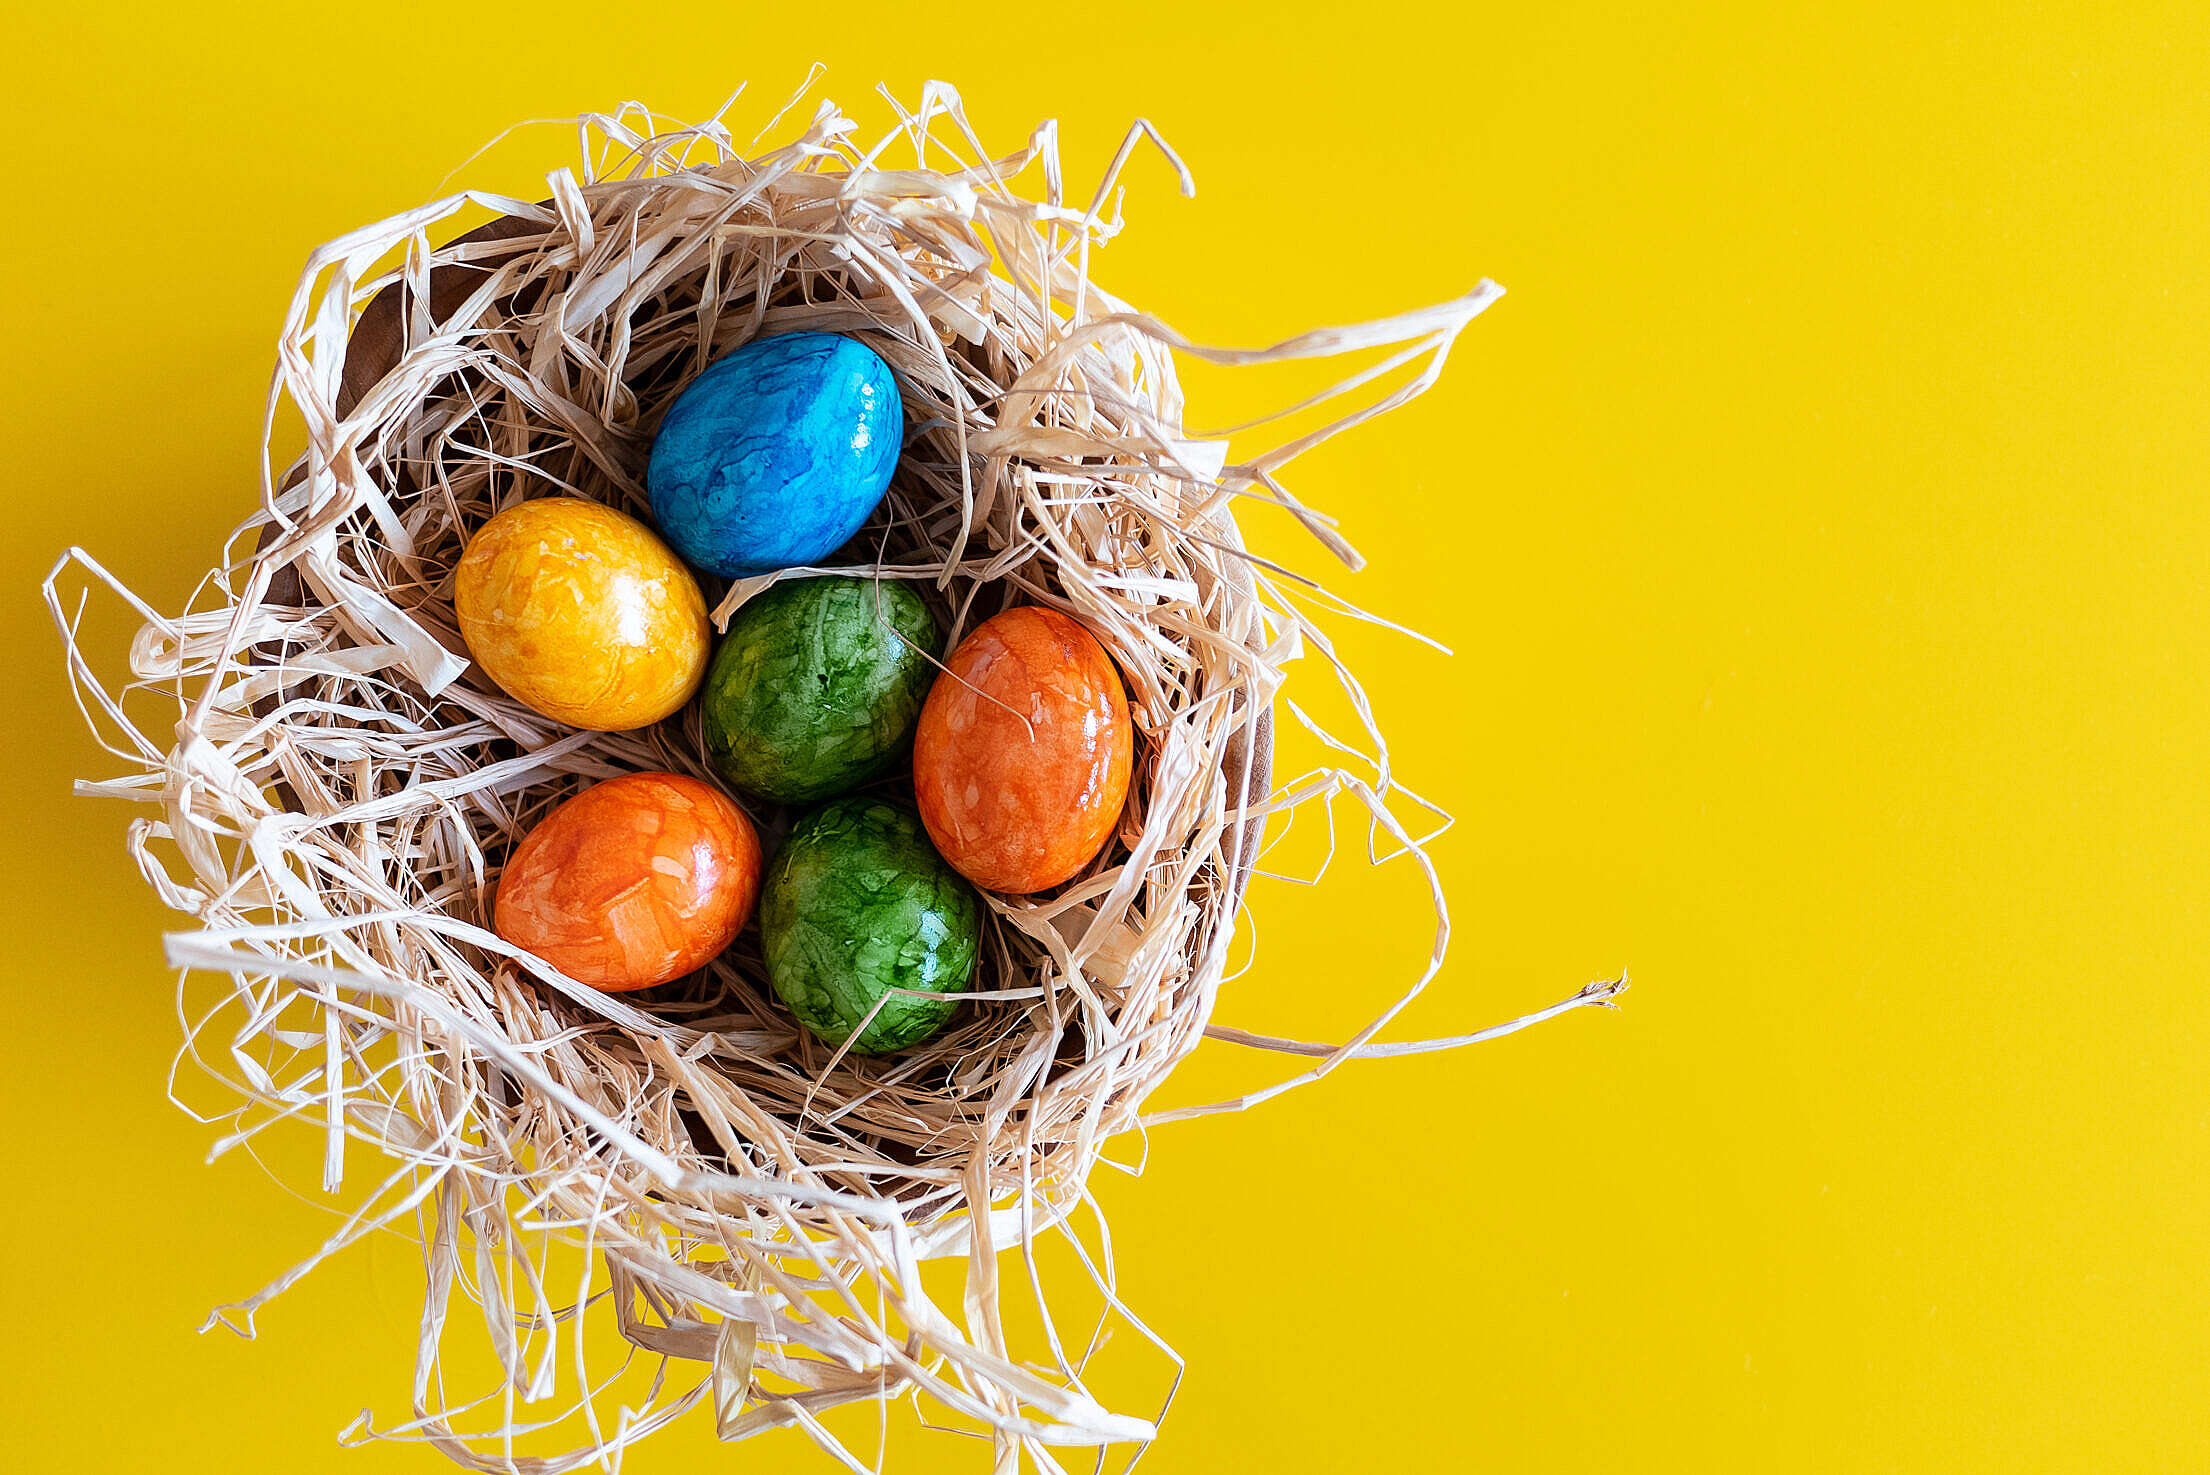 Colorful Easter Eggs on Yellow Background Free Stock Photo